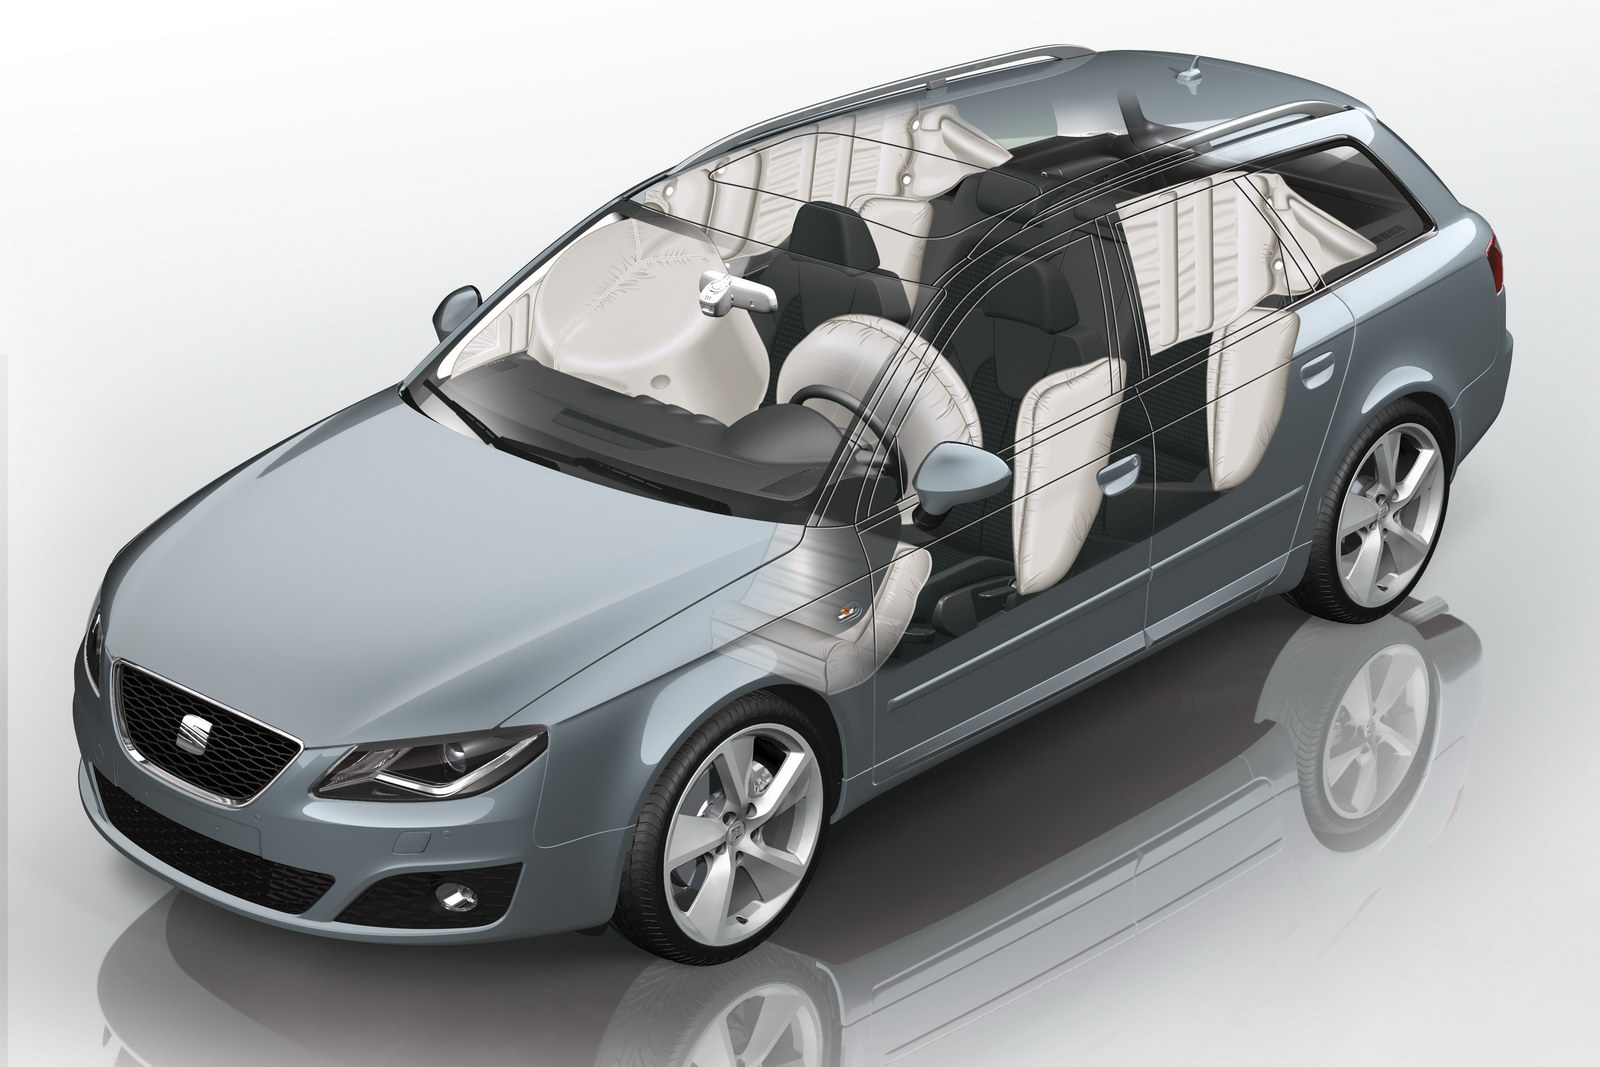 2012 Seat Exeo Saloon and ST 51 2012 SEAT EXEO SALOON AND ST FACELIFT VERSION INTRODUCED